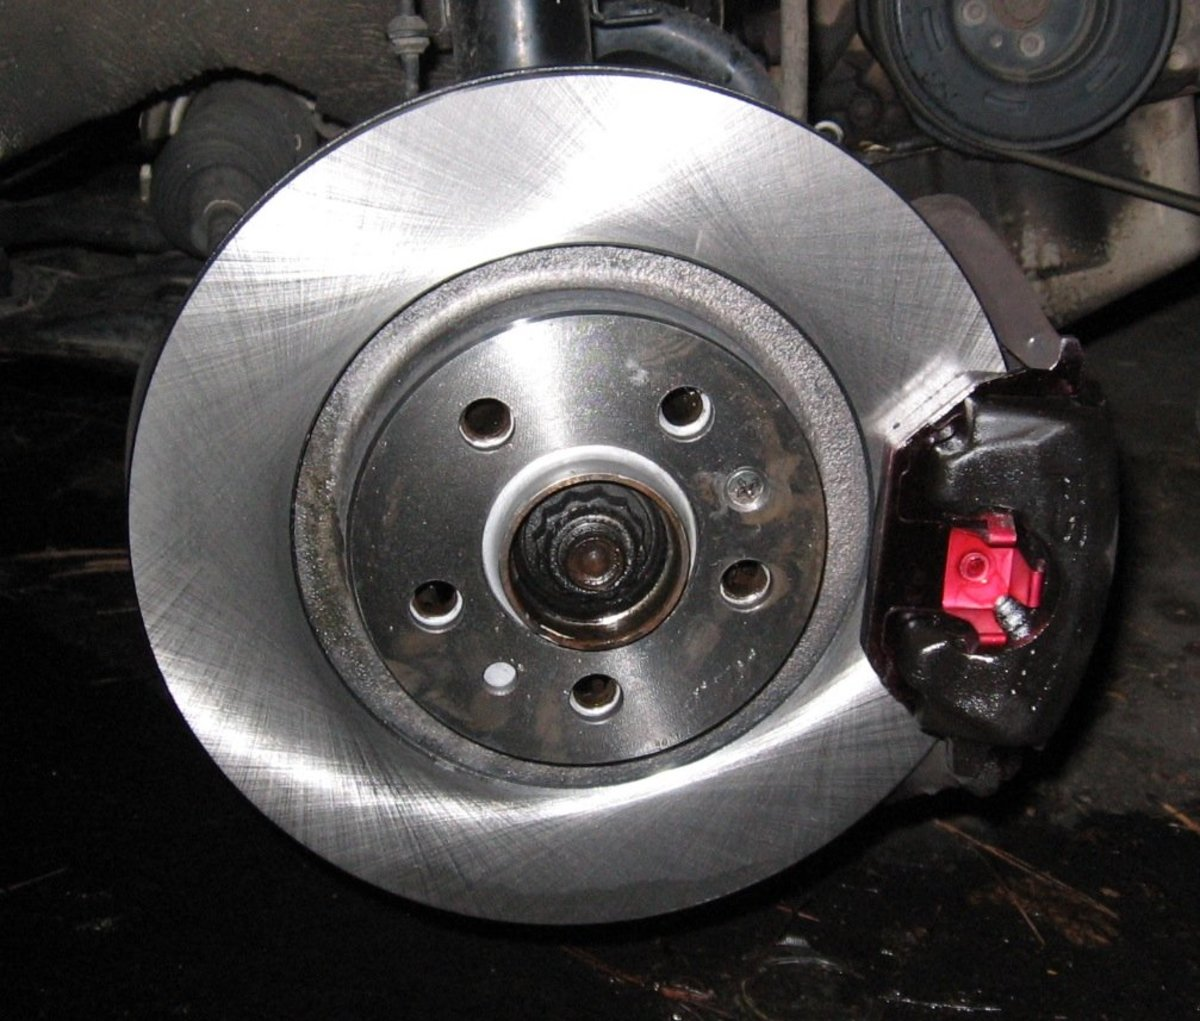 MKIV Jetta Golf 2 0L: How to Change Front Brake Pads and Rotors